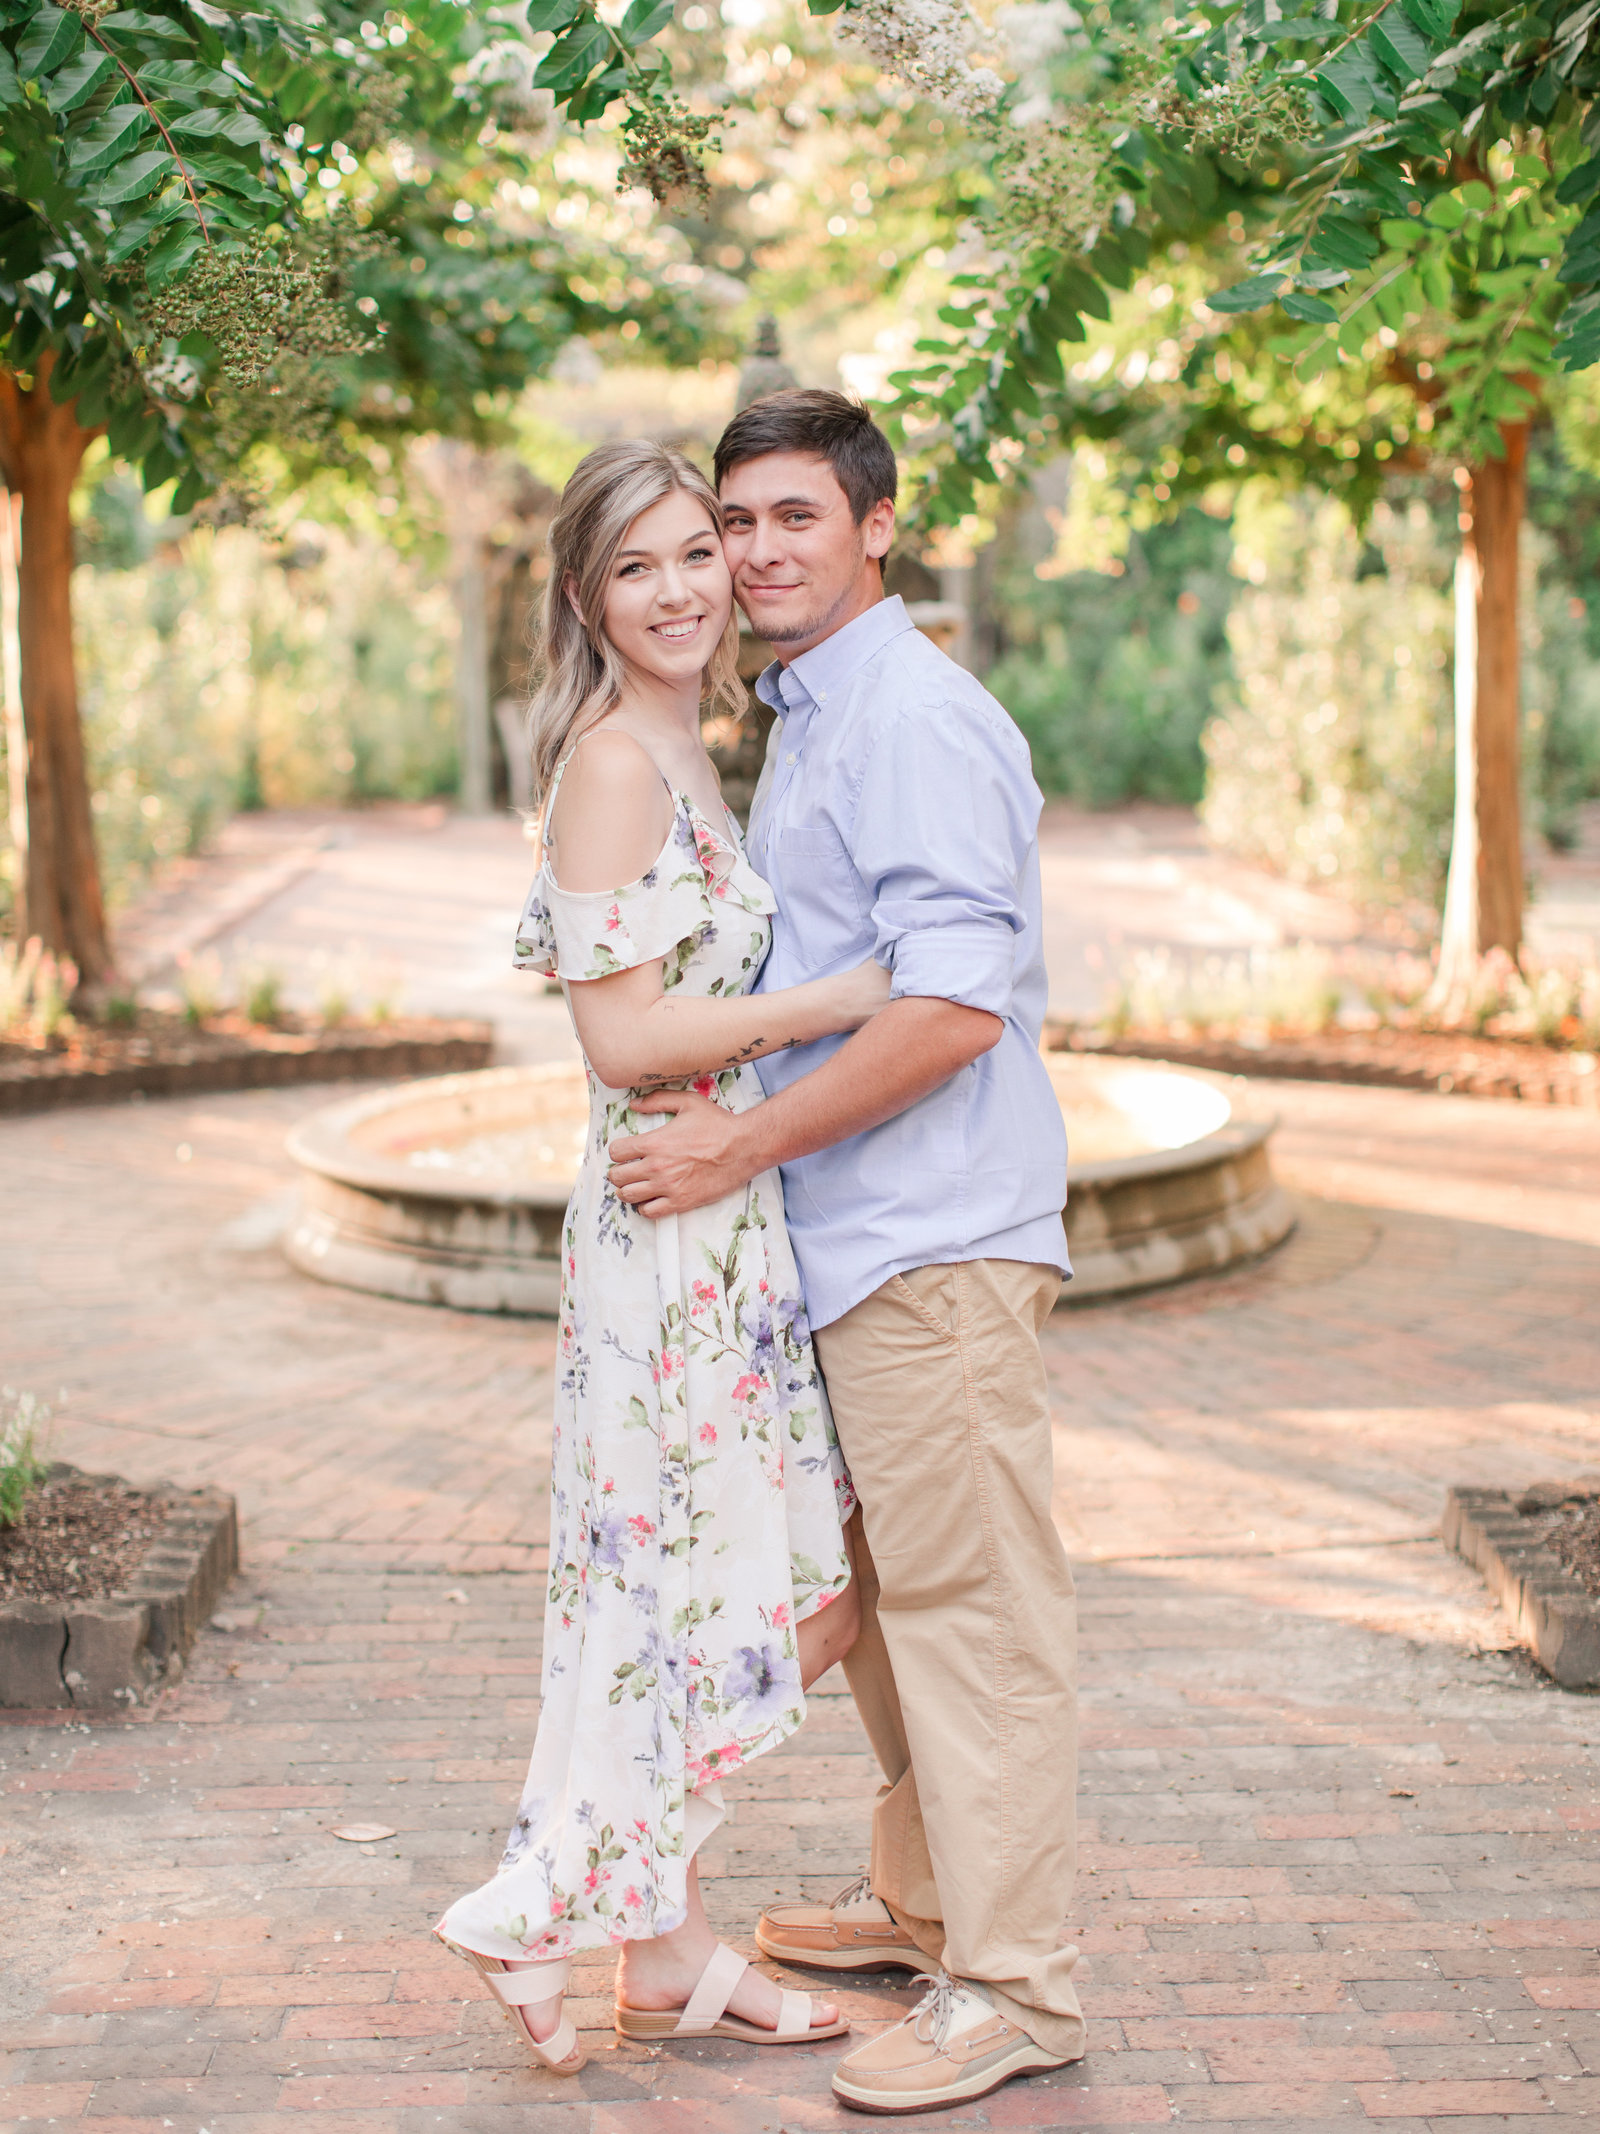 Jennifer B Photography-Sandhills Horticultural Gardens Engagement-Pinehurst NC-Cody and Kayla-2019-0078